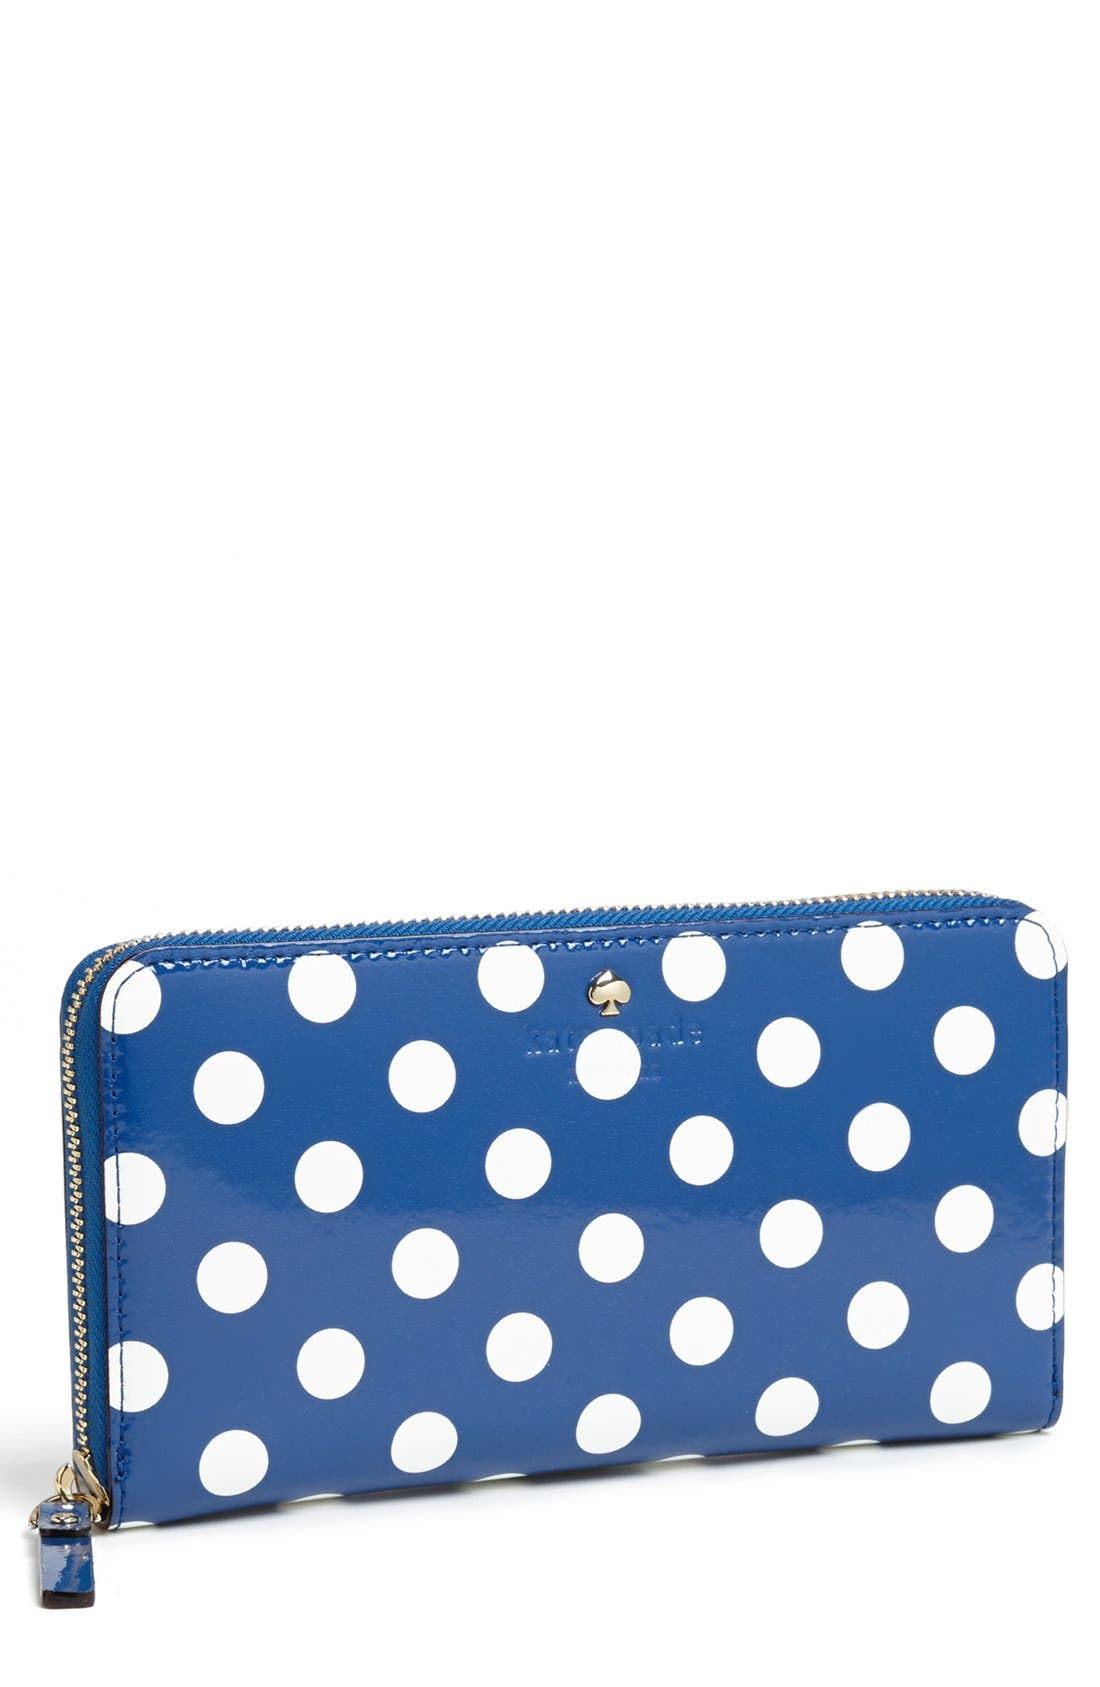 Alternate Image 1 Selected - kate spade new york 'carlise street - lacey' zip around wallet